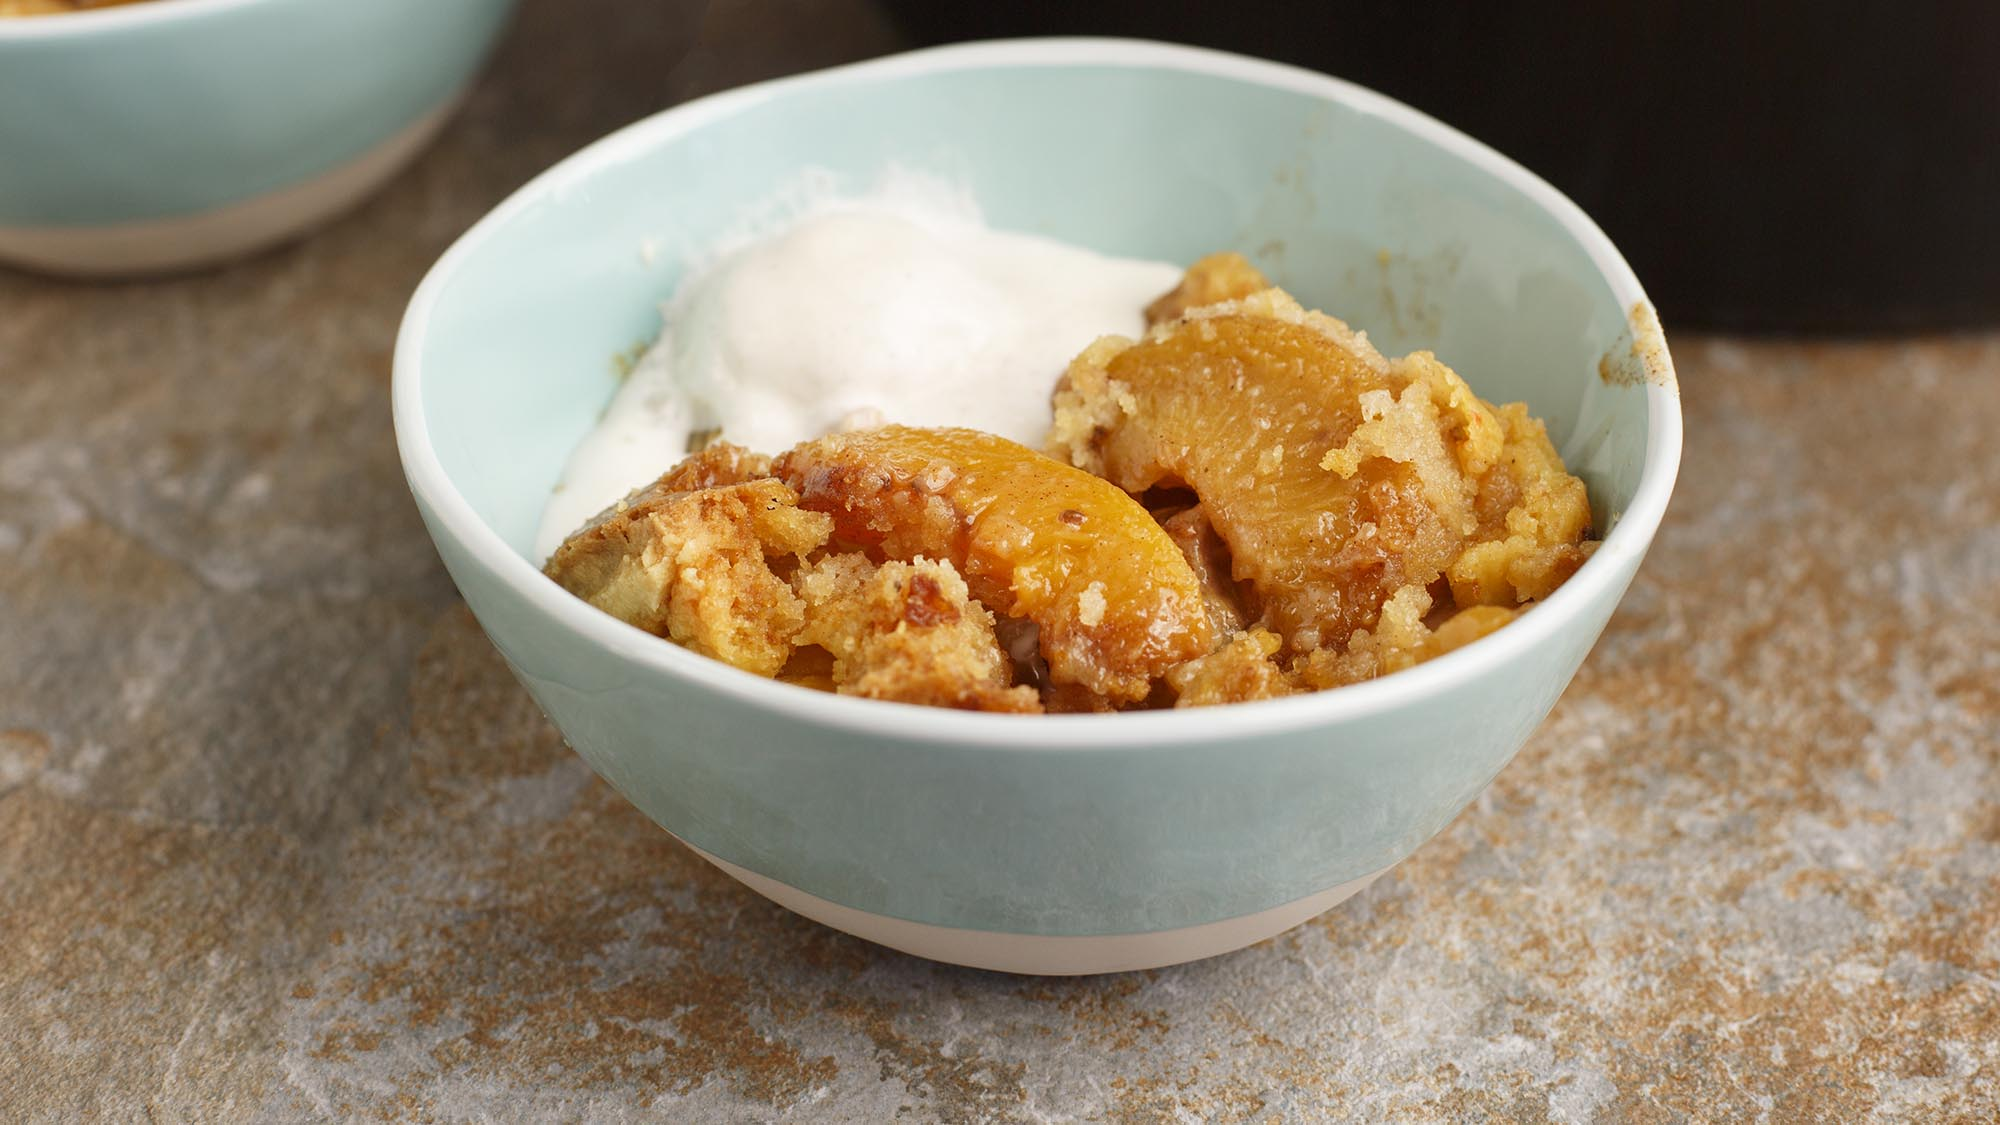 McCormick Slow Cooker Peach Cobbler